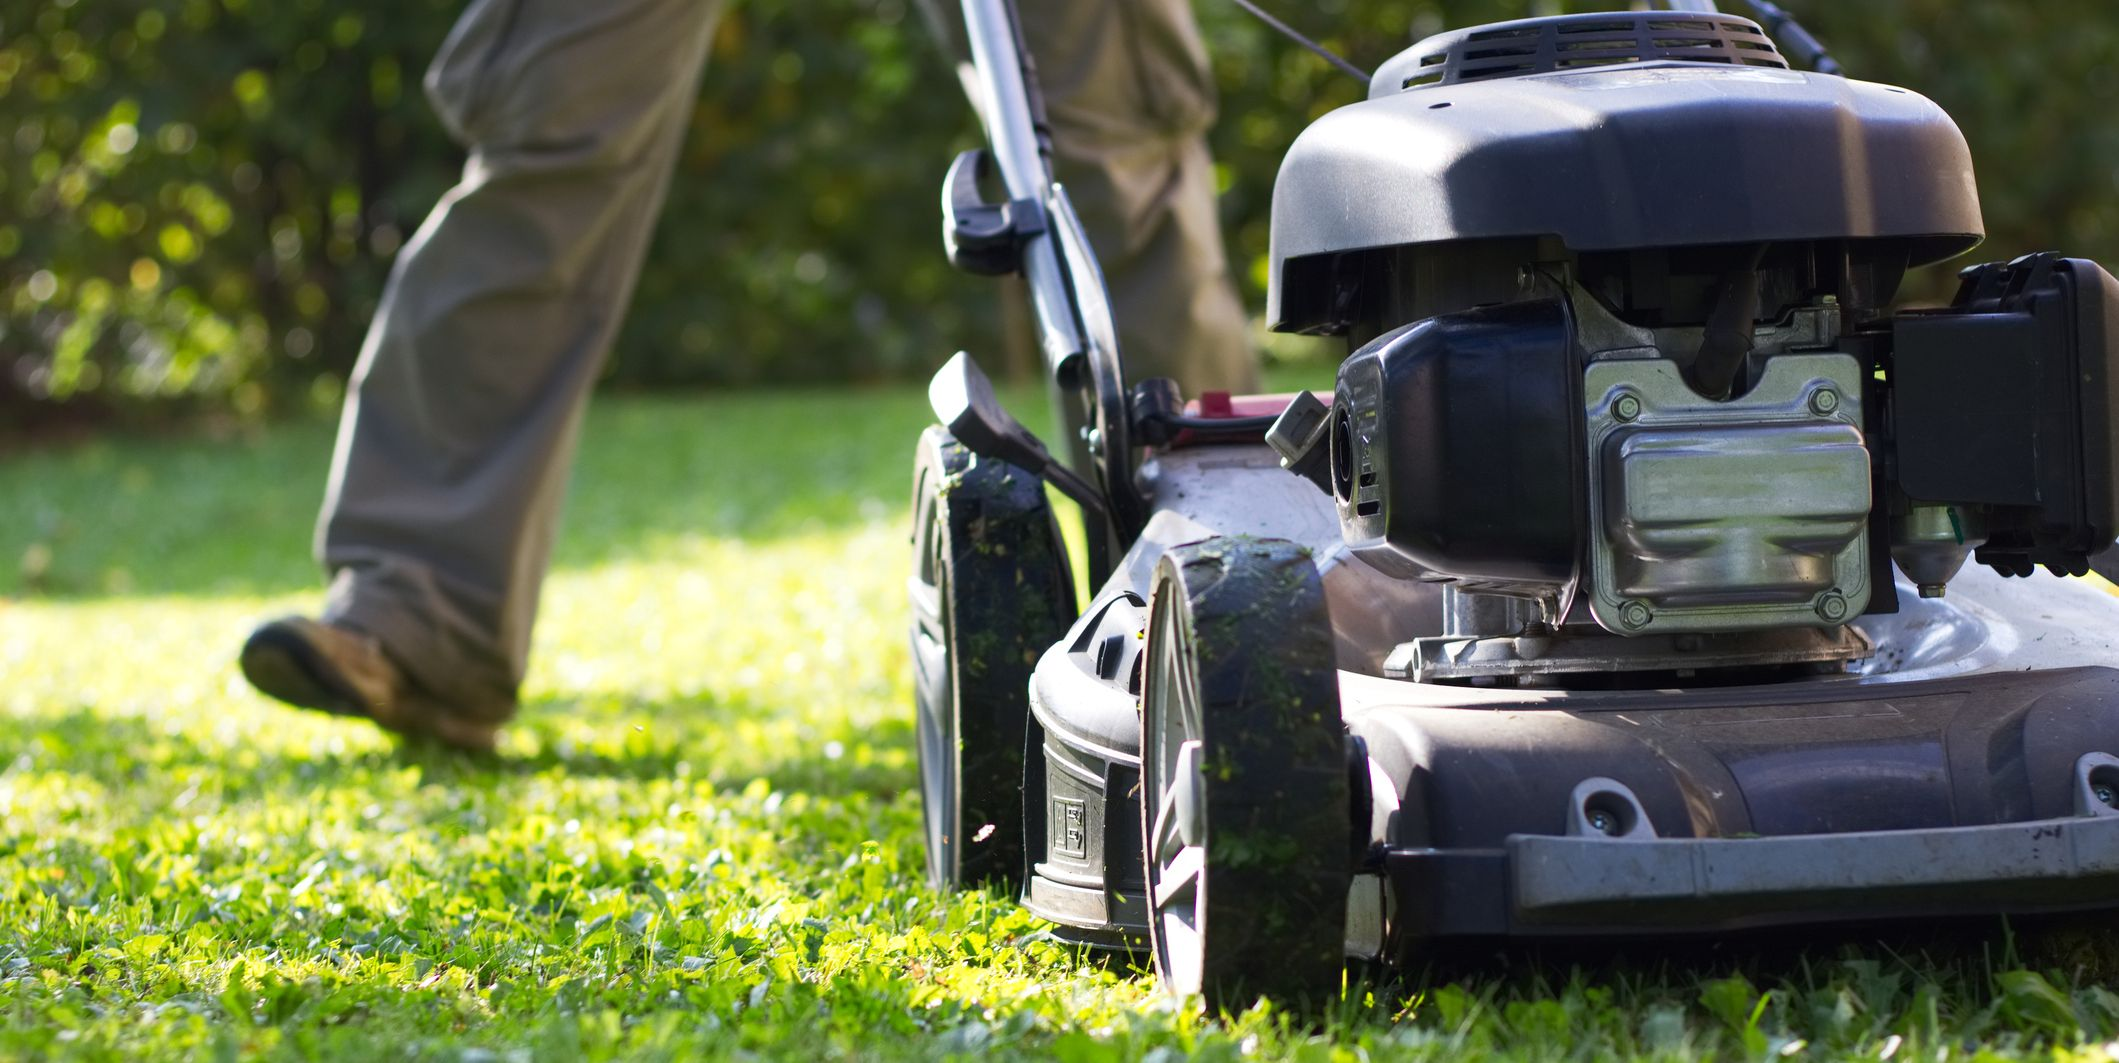 lawn mower during the mowing grass in garden